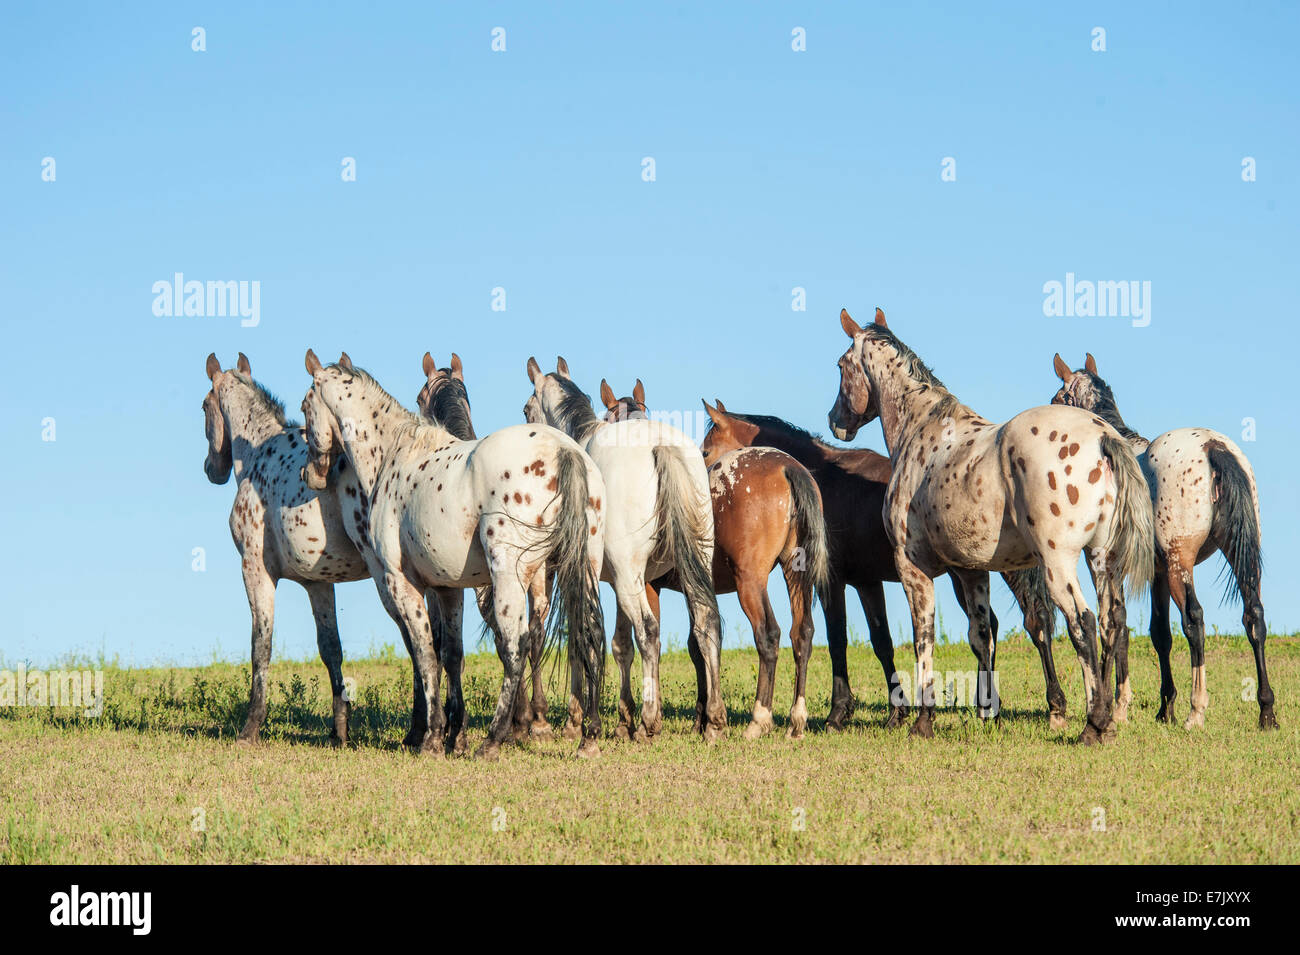 tiger horse herd tiger horses are gaited spotted trail horses